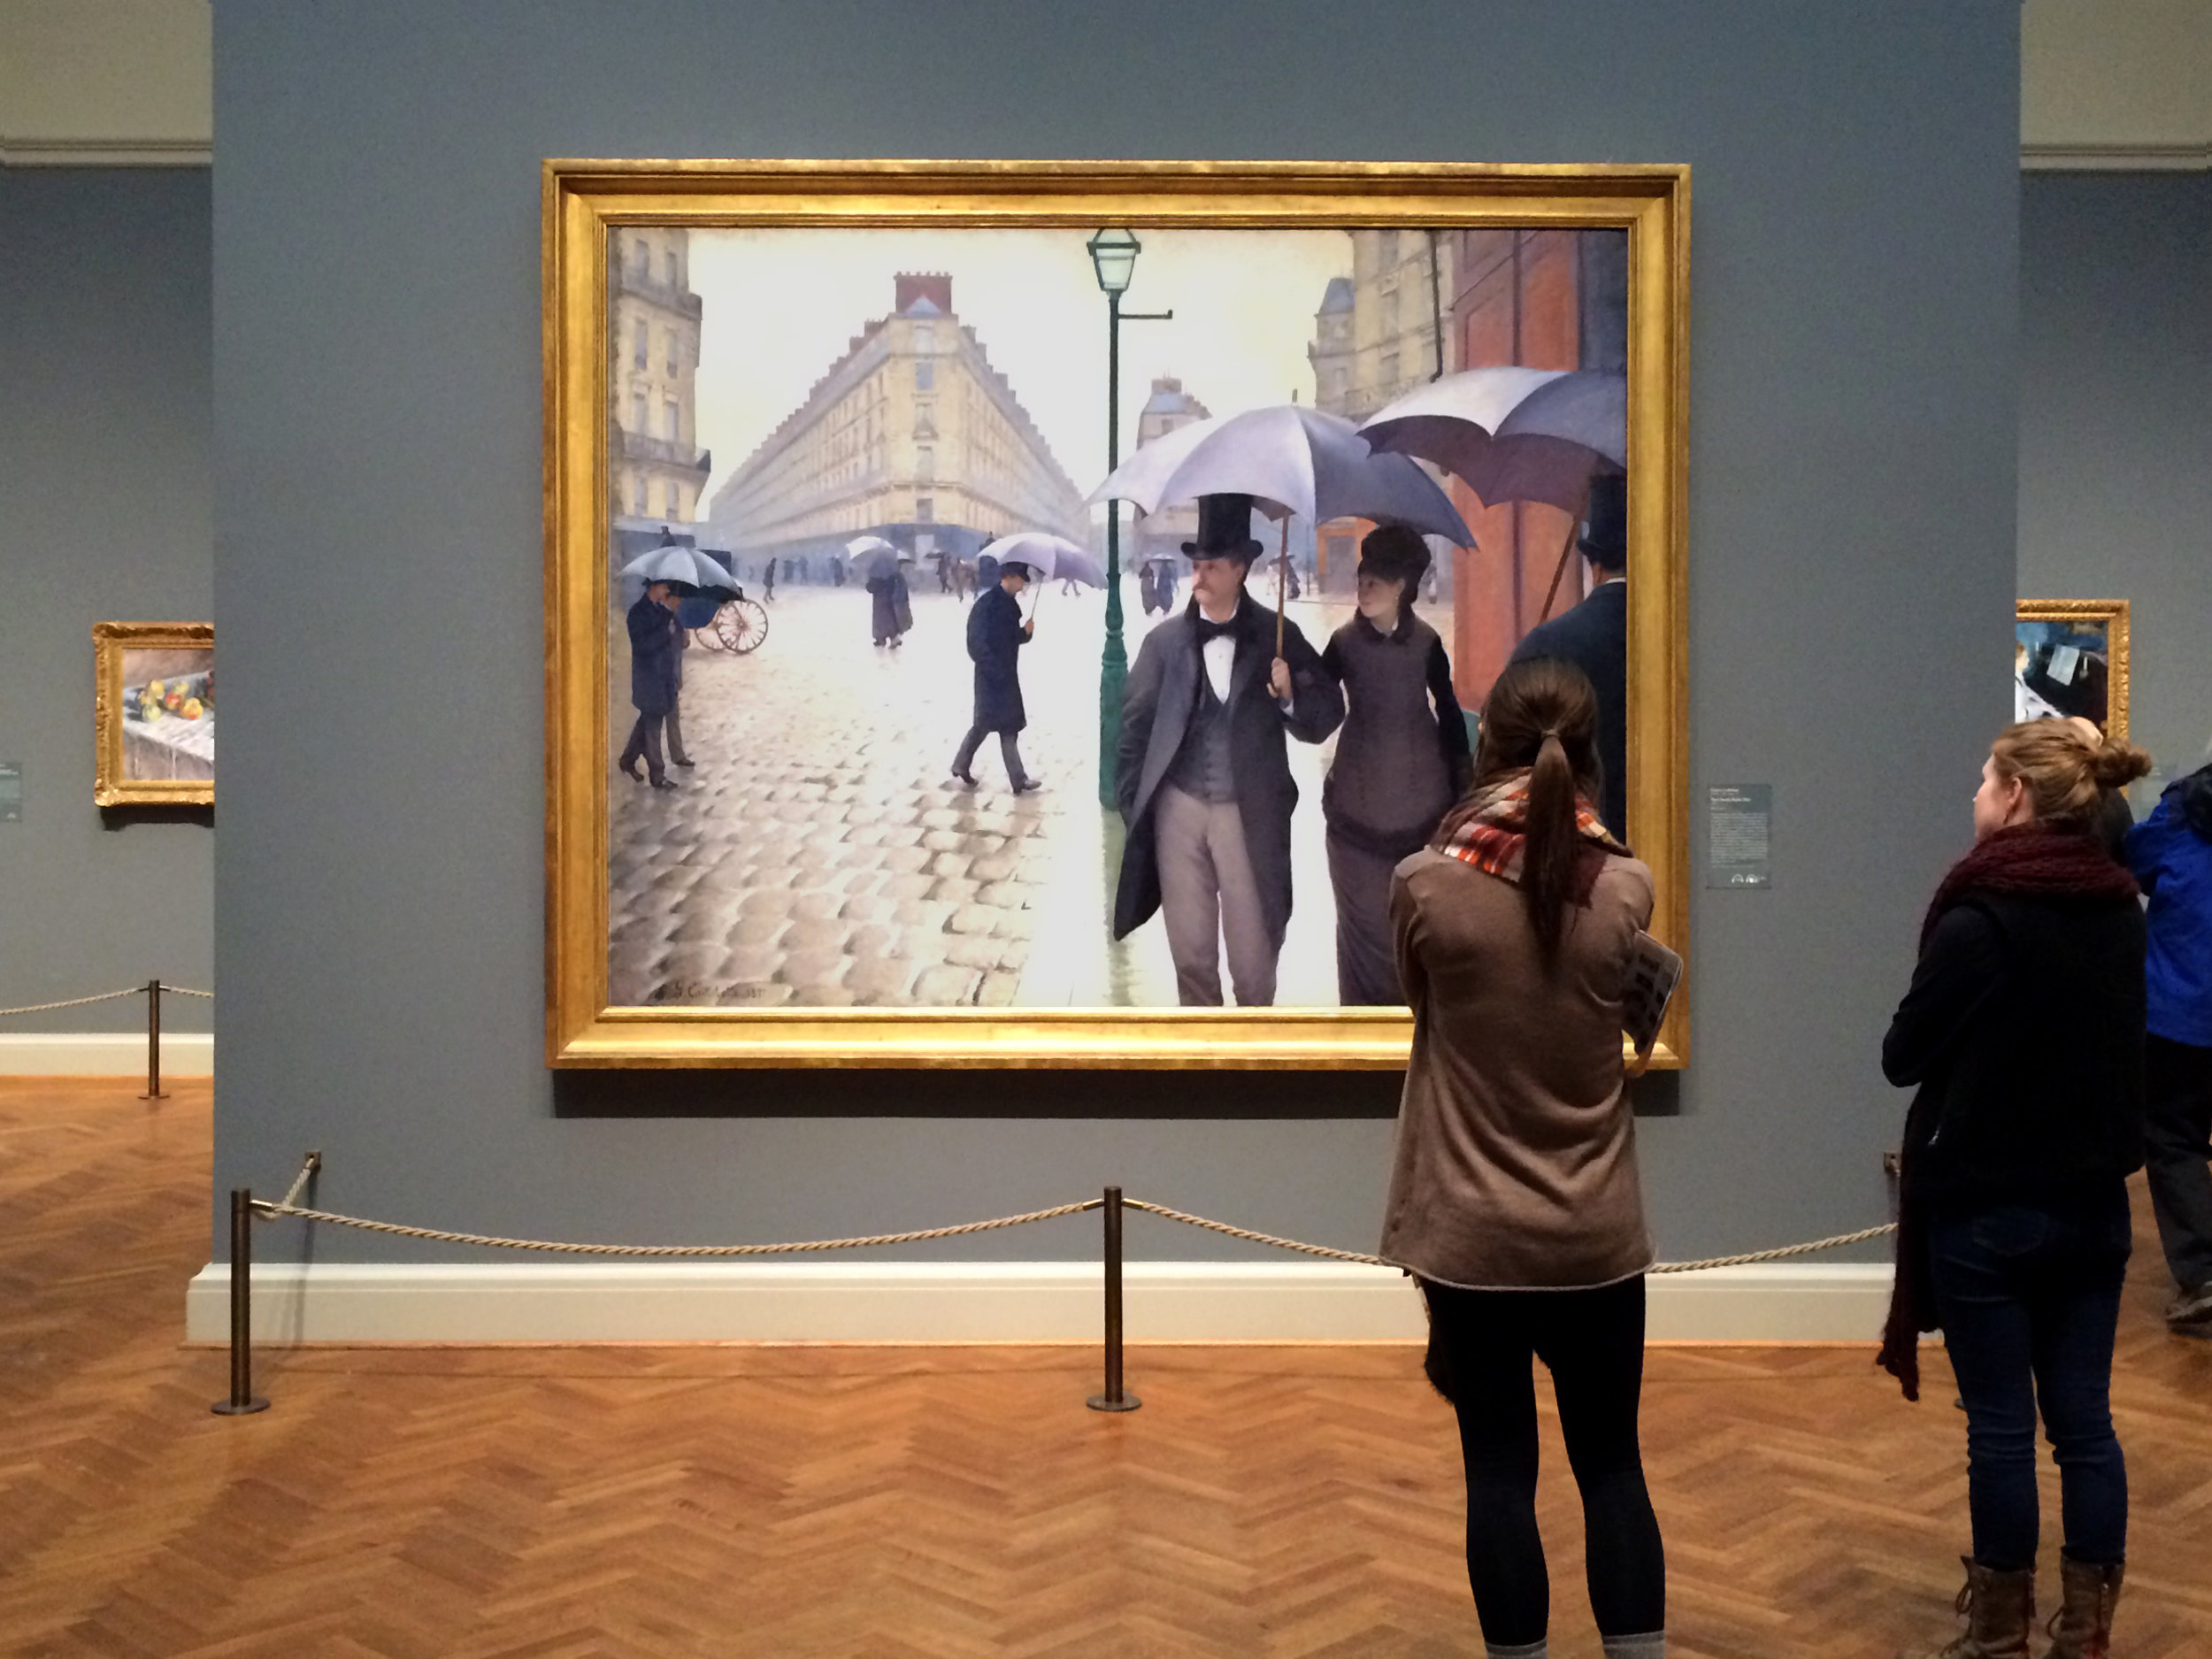 Gustave Caillebotte,  Paris Street; Rainy Day  (1877) on view at The Art Institute of Chicago.